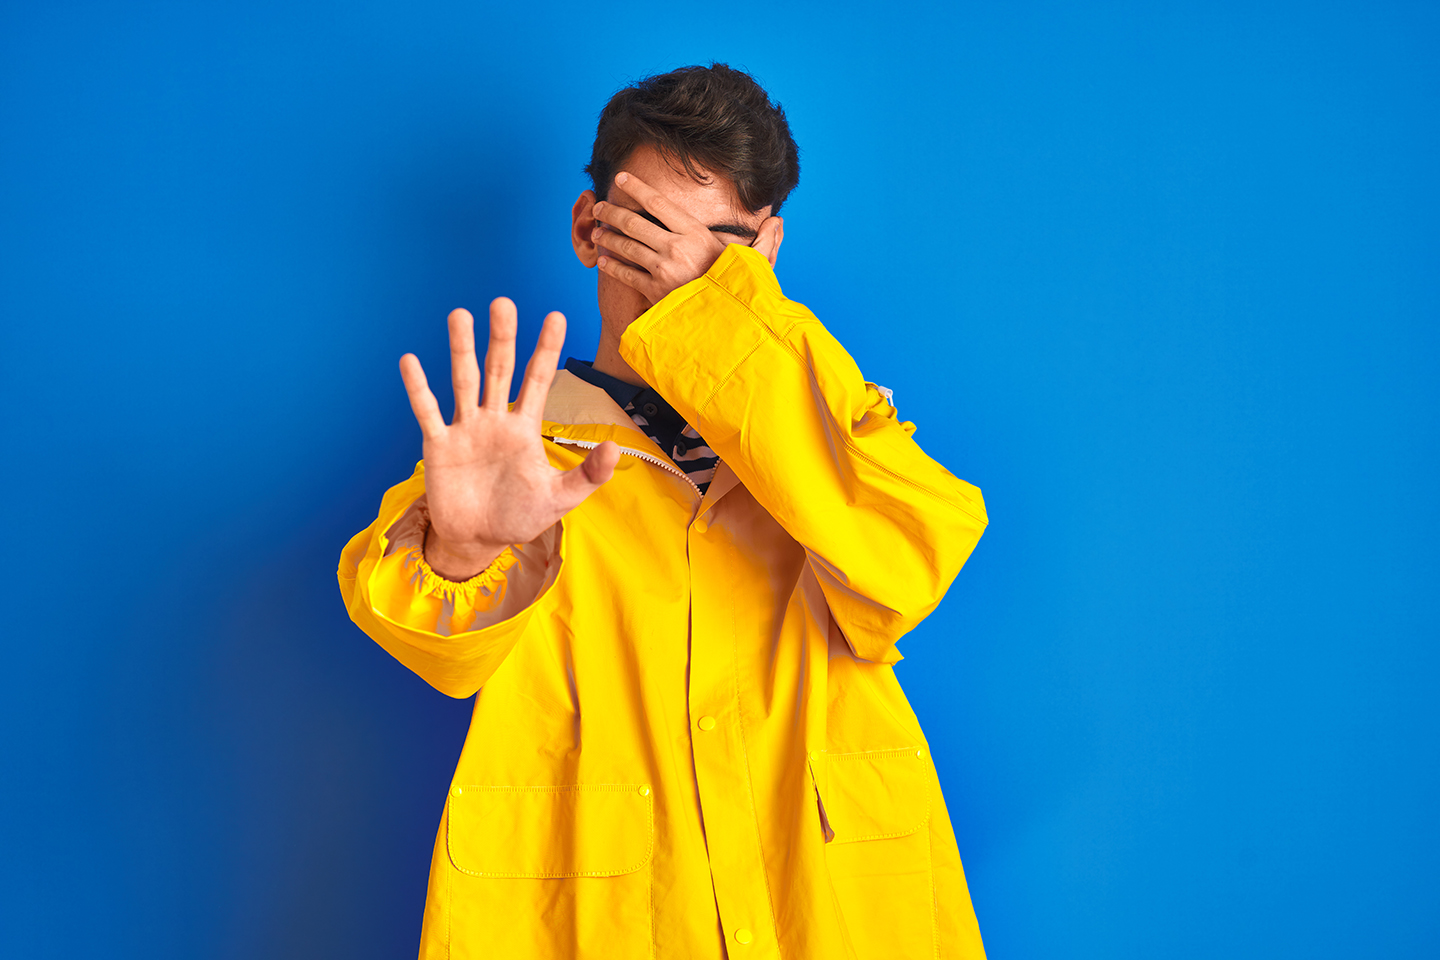 A young man in a yellow fisherman's jacket holding one hand to his face and the other out to the camera